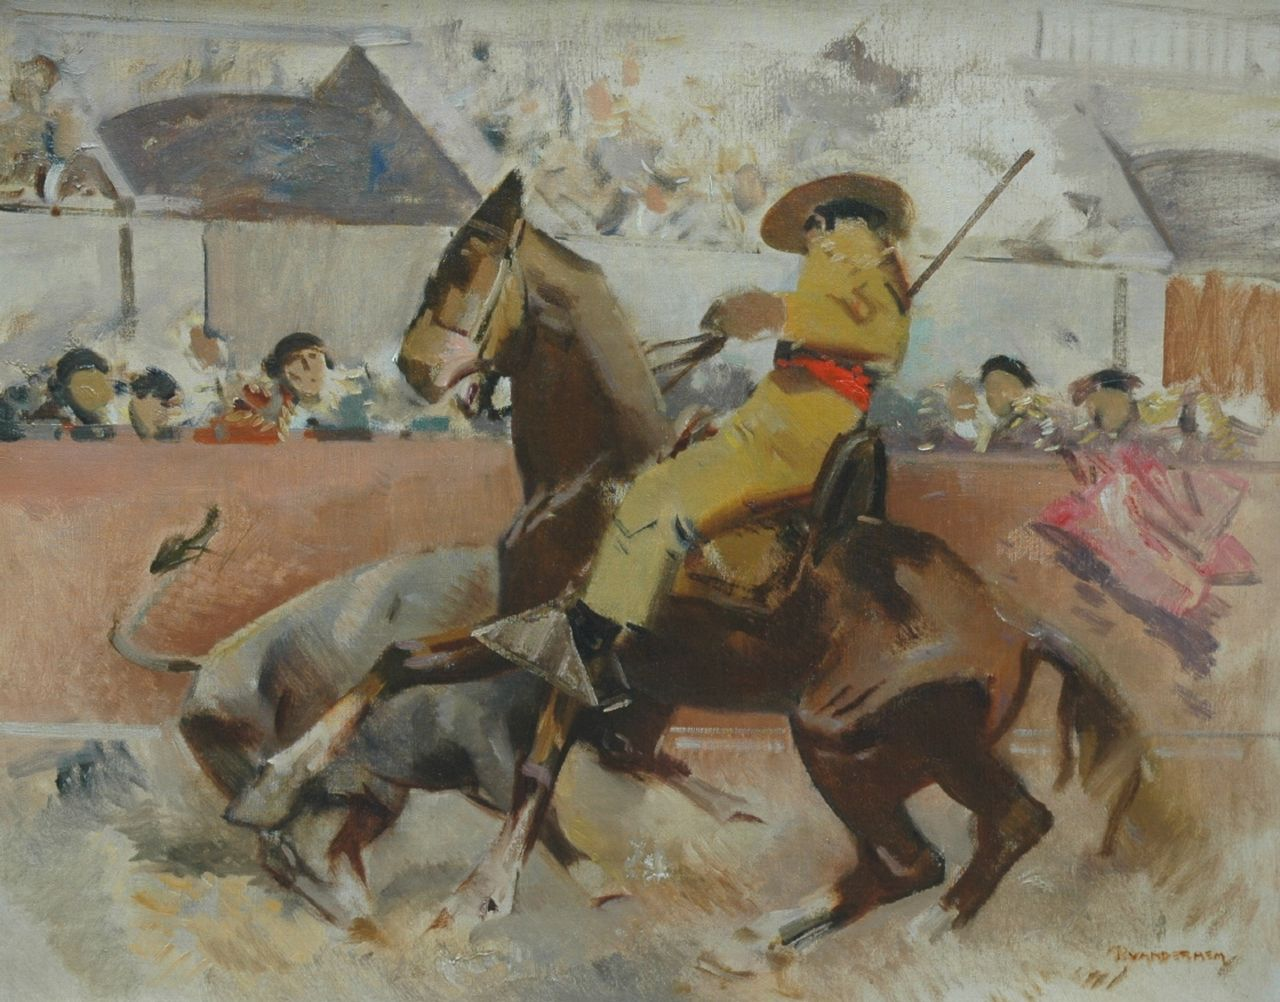 Hem P. van der | Pieter 'Piet' van der Hem, A bullfight, oil on canvas 61.5 x 77.2 cm, signed l.r.